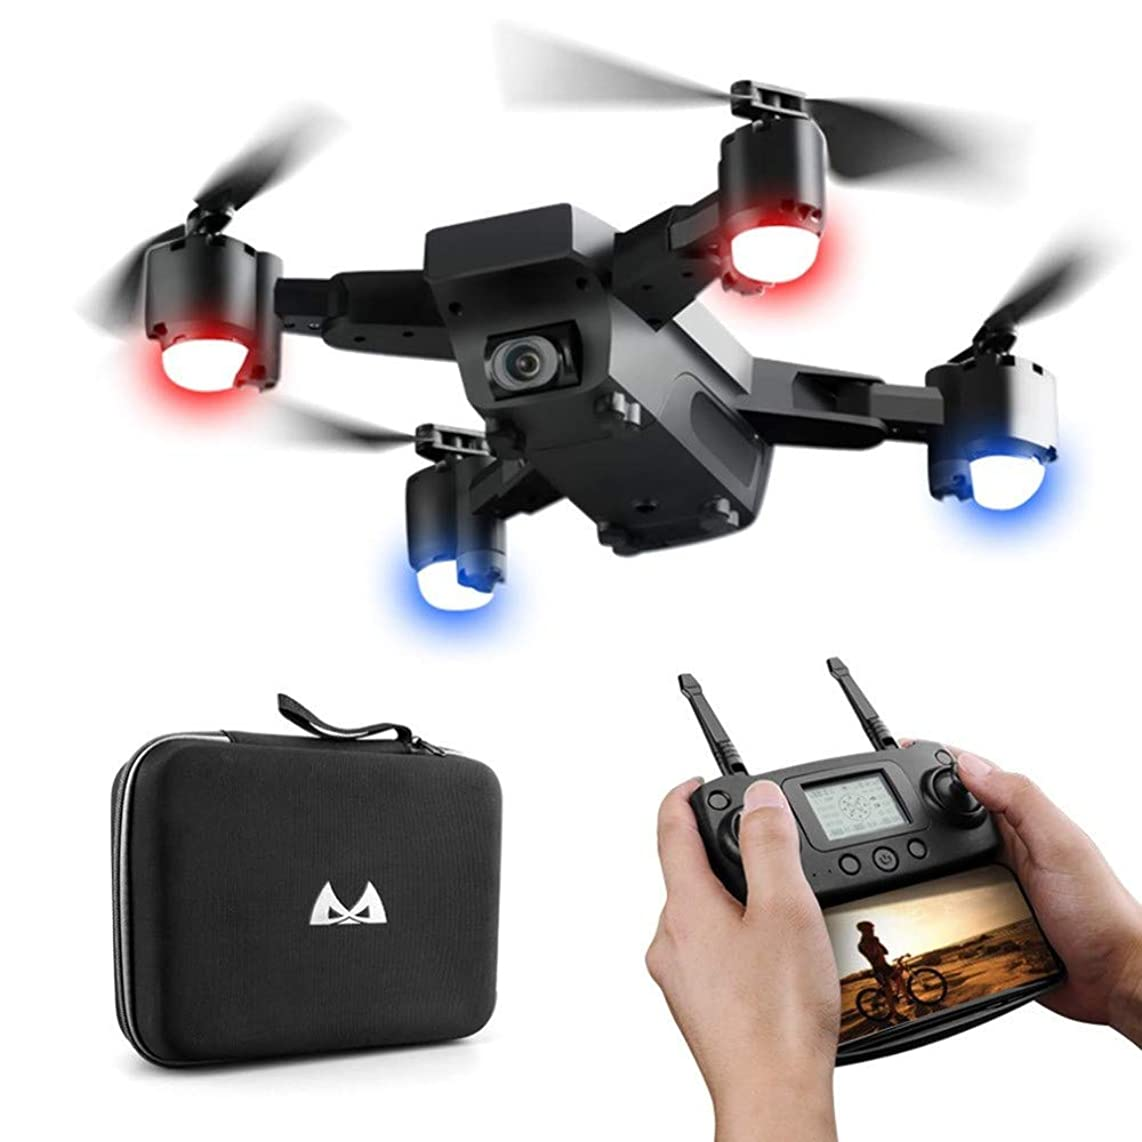 2.4GHz Foldable Quadcopter, SMRC S20 RC Quadcopter 3D Flips 1080P 120°Wide-Angle Altitude Hold Selfie Drone Remote Control Toy with LED Lights & Portable Storage Bag, for Kids & Beginners